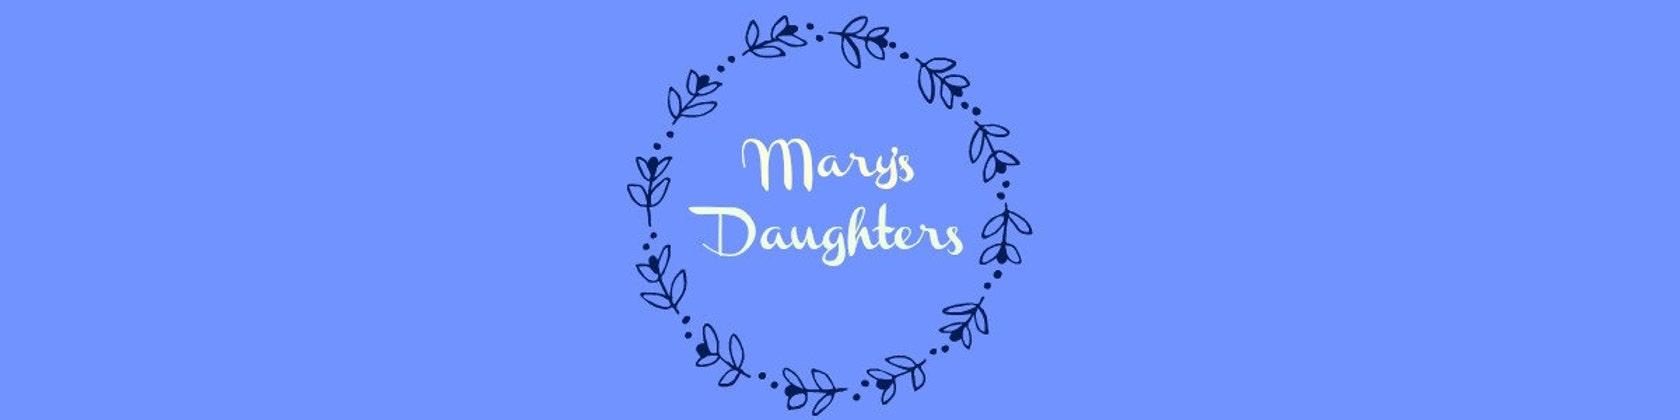 Children's Toys and Other Items by MarysDaughters on Etsy